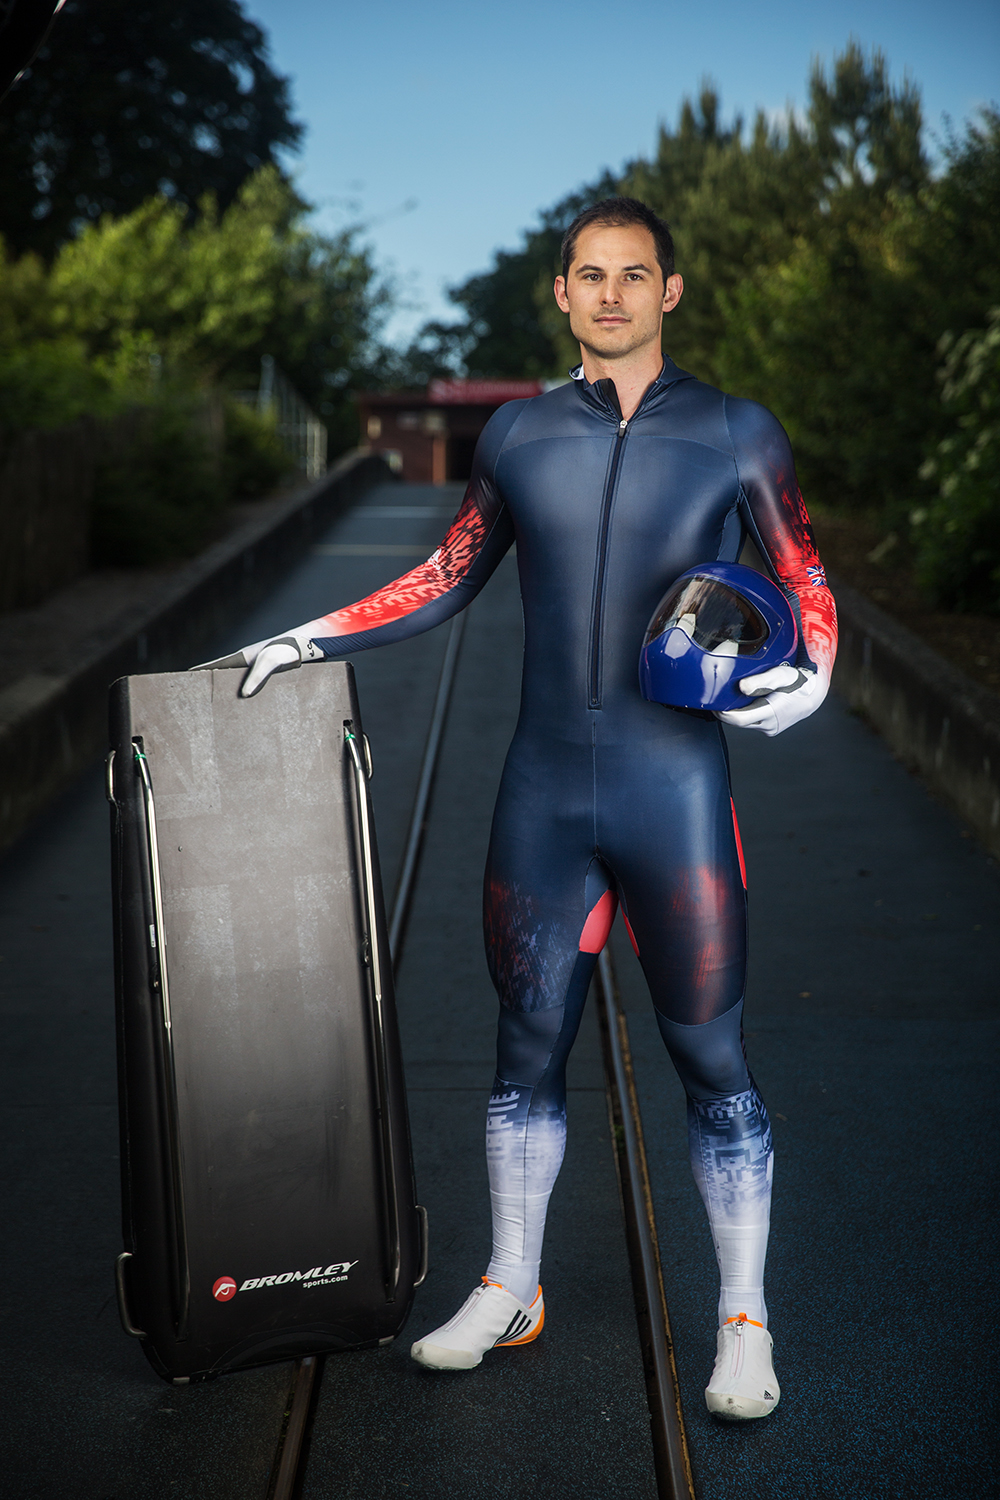 Dom Parsons, with his Bromley Sports Skeleton Sled